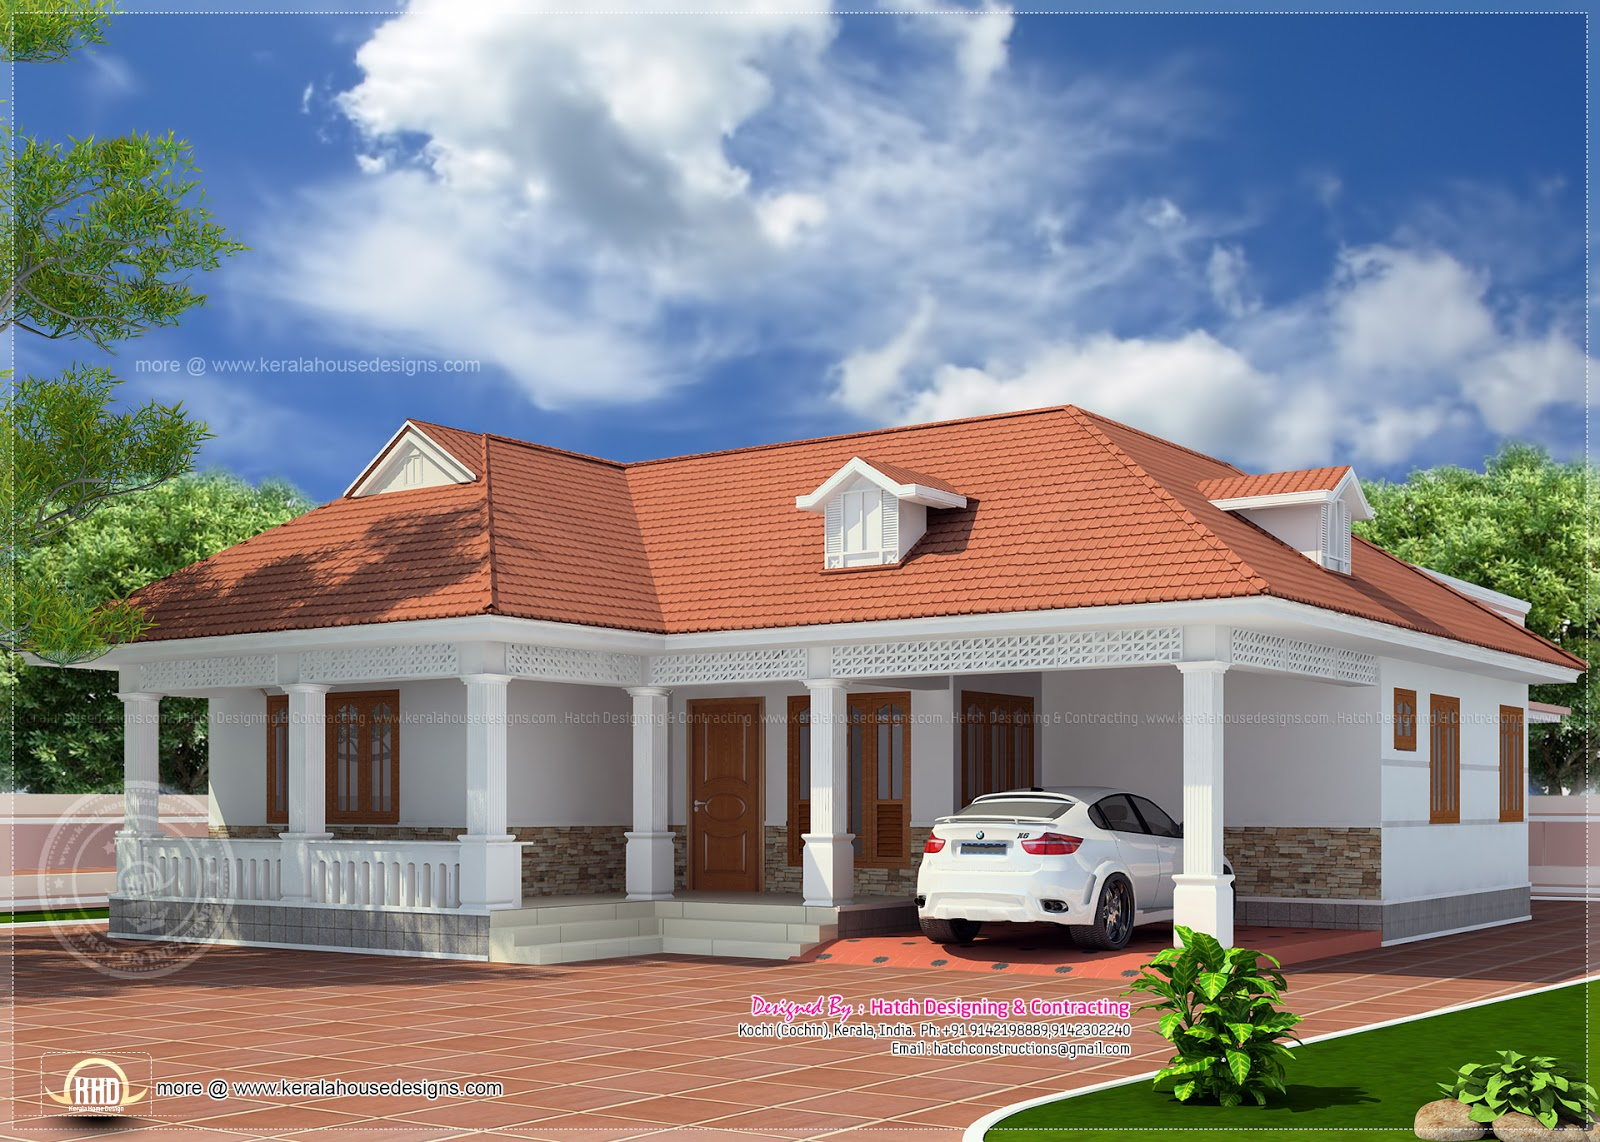 1850 kerala style home elevation kerala home for Elevation of kerala homes